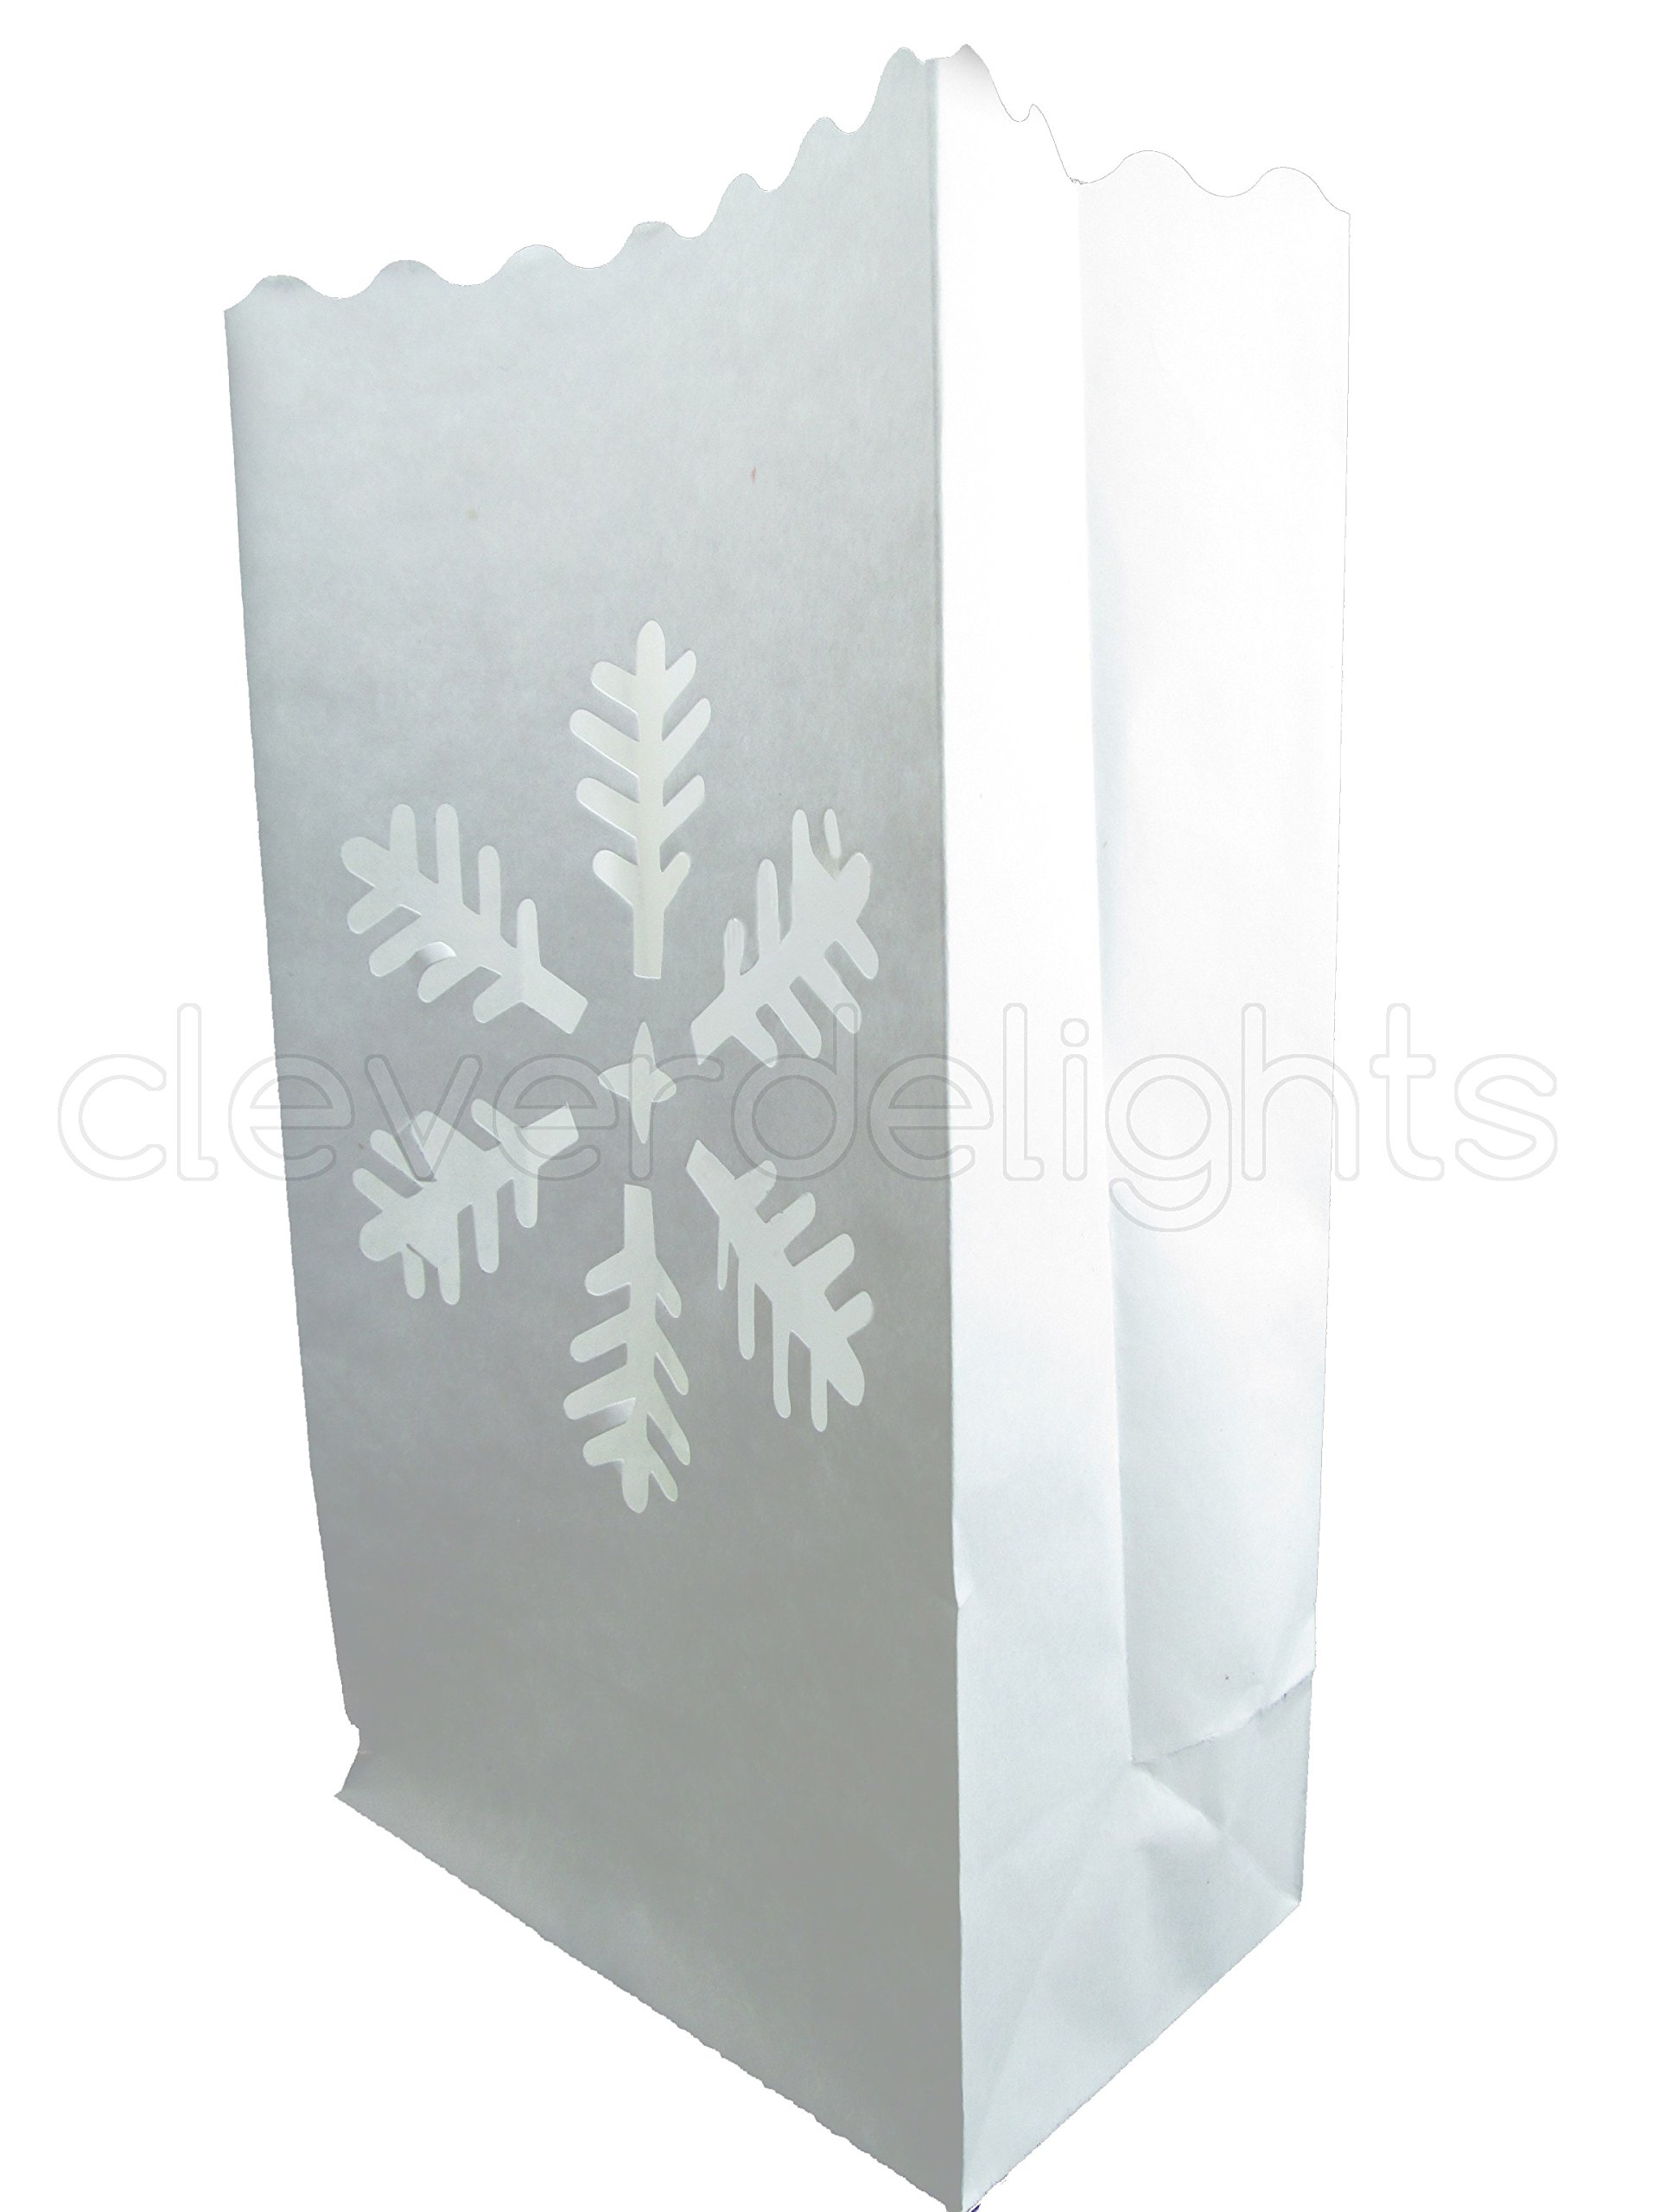 CleverDelights White Luminary Bags - 20 Count - Snowflake Design - Flame Resistant Paper - Christmas Holiday Outdoor Decorations - Party and Event Decor - Luminaria Candle Bag - Twenty Bags